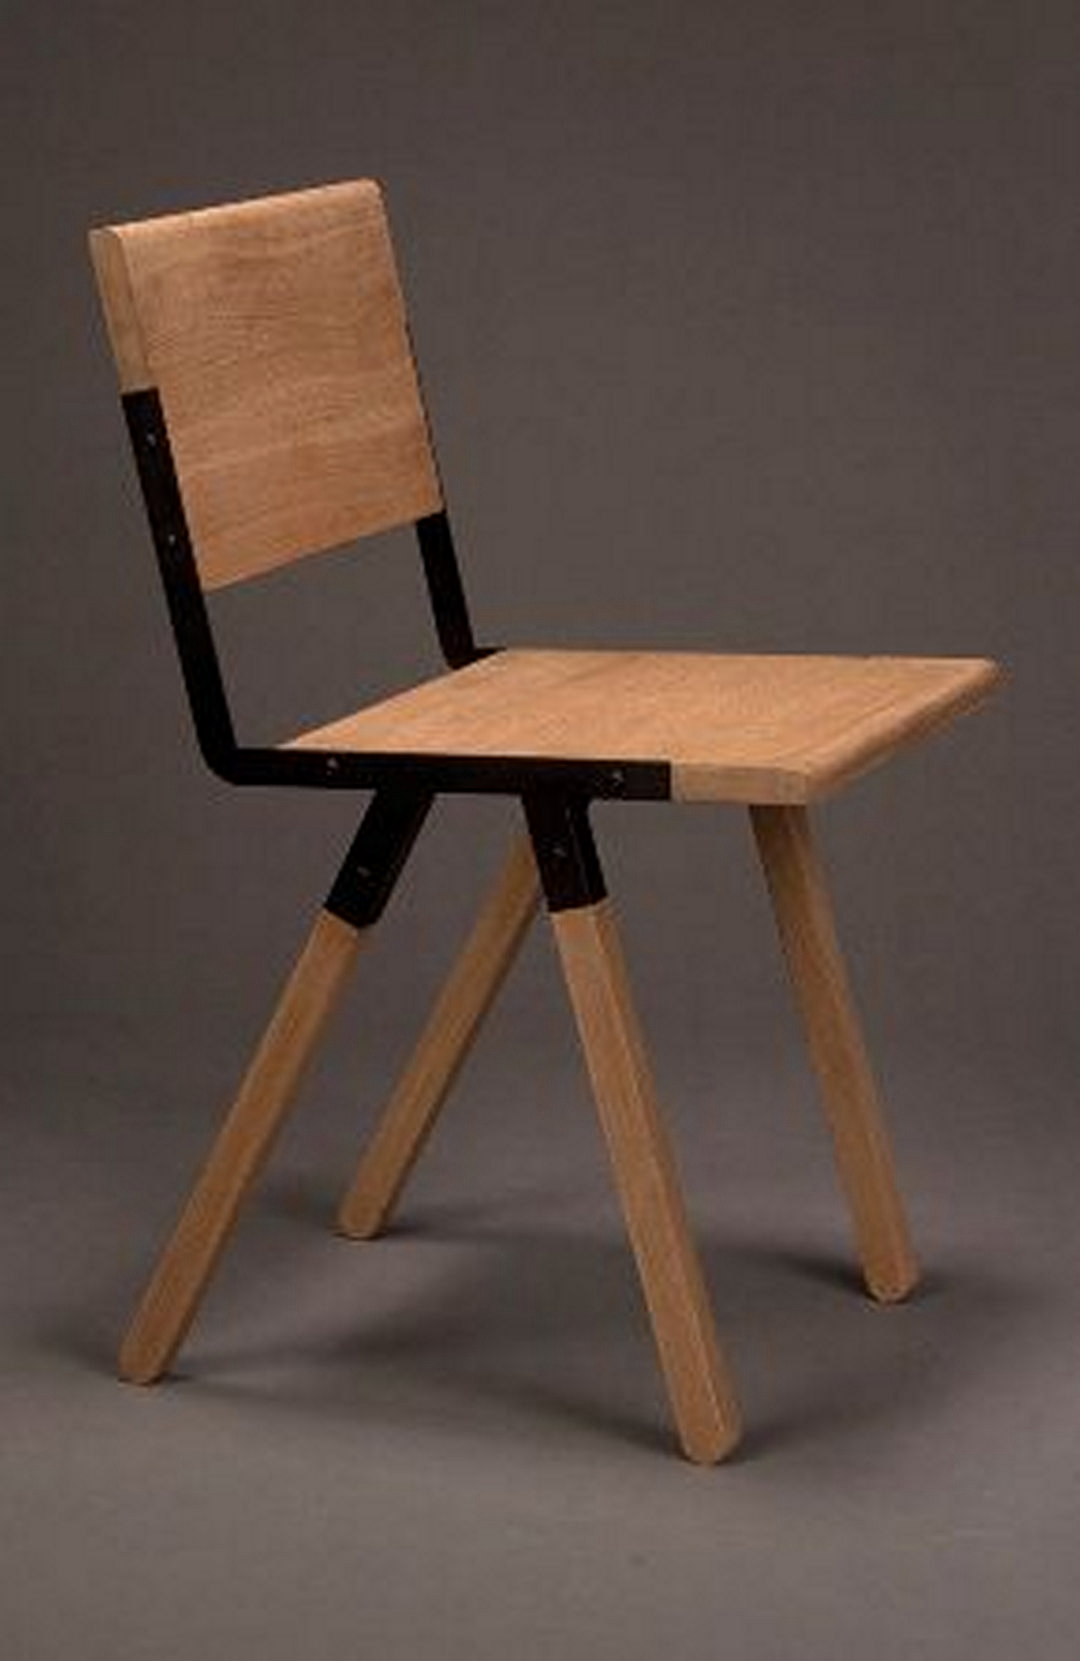 106 Beautiful Modern Chair Designs Https://www.designlisticle.com/chair  Designs/